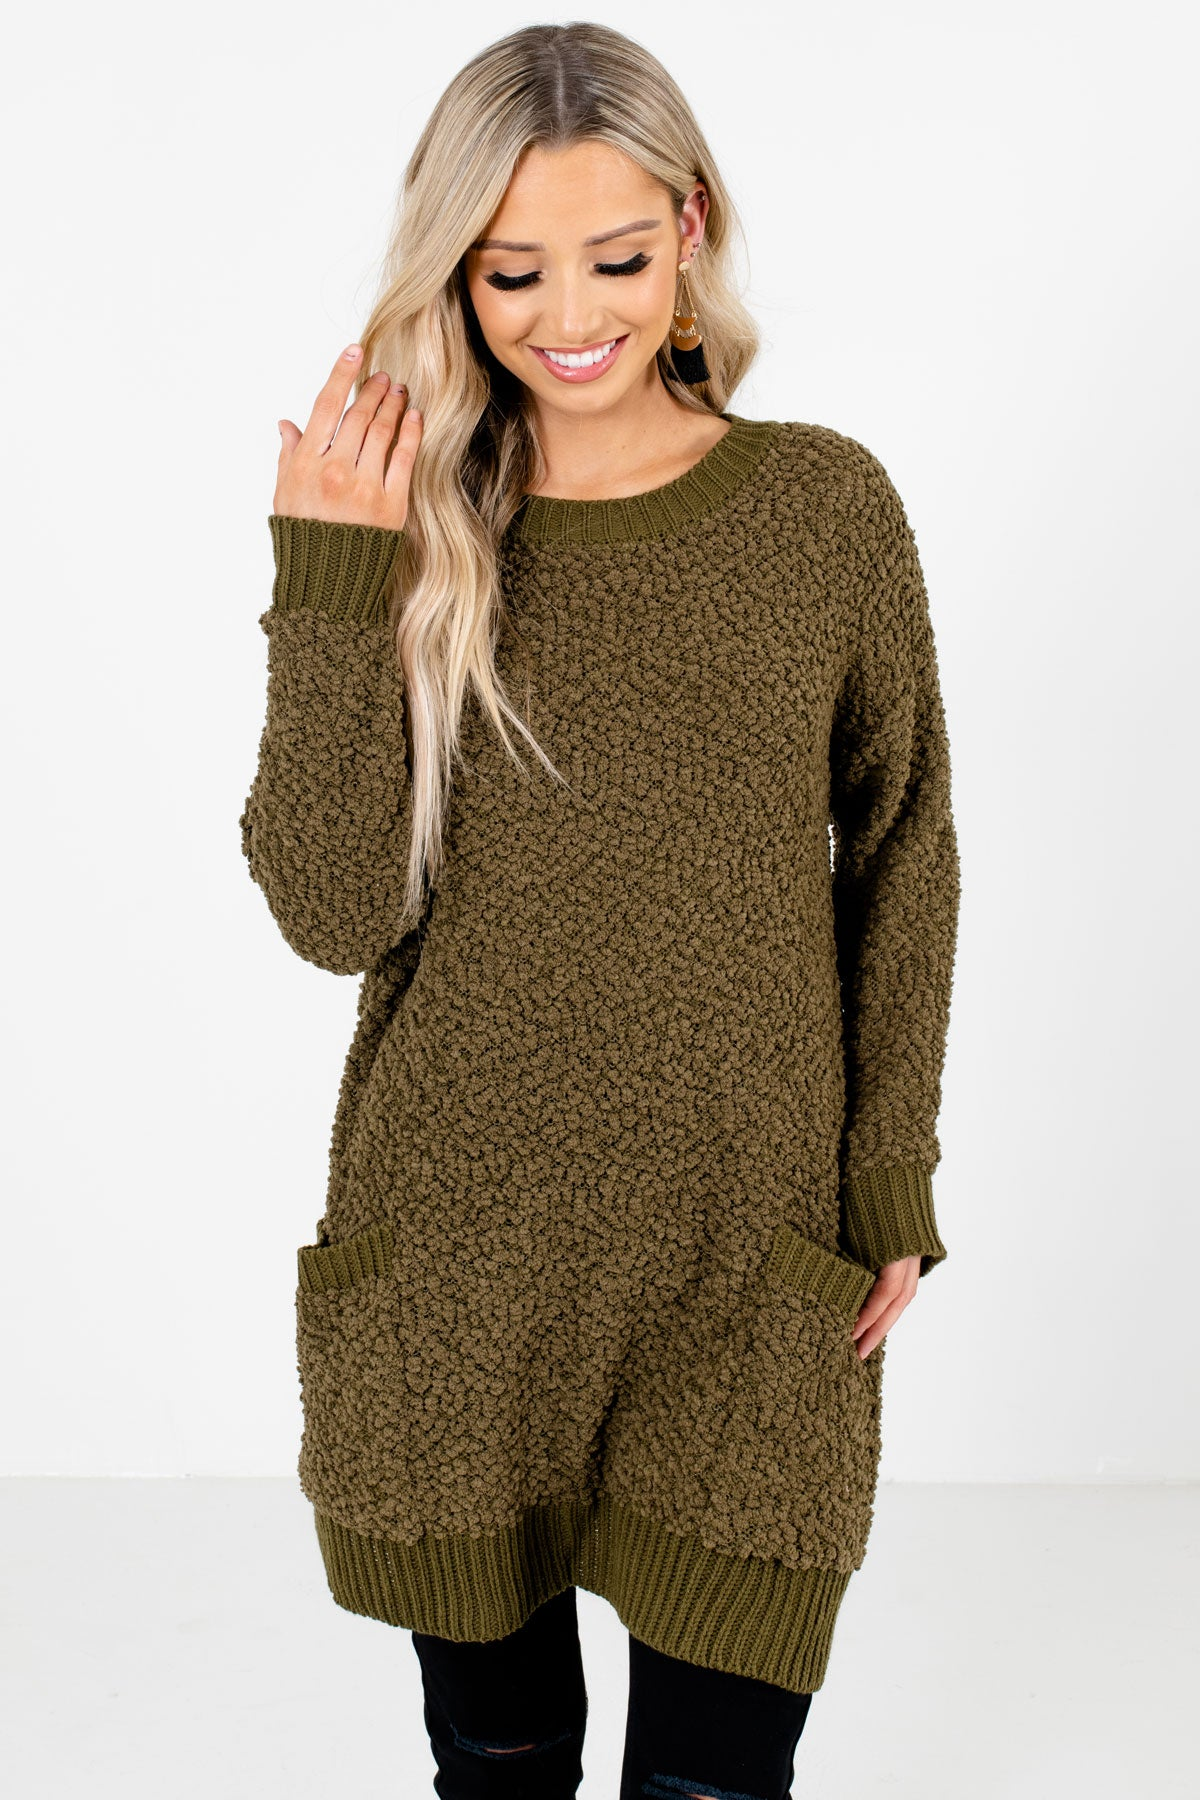 Olive Green High-Quality Popcorn Knit Material Boutique Sweaters for Women